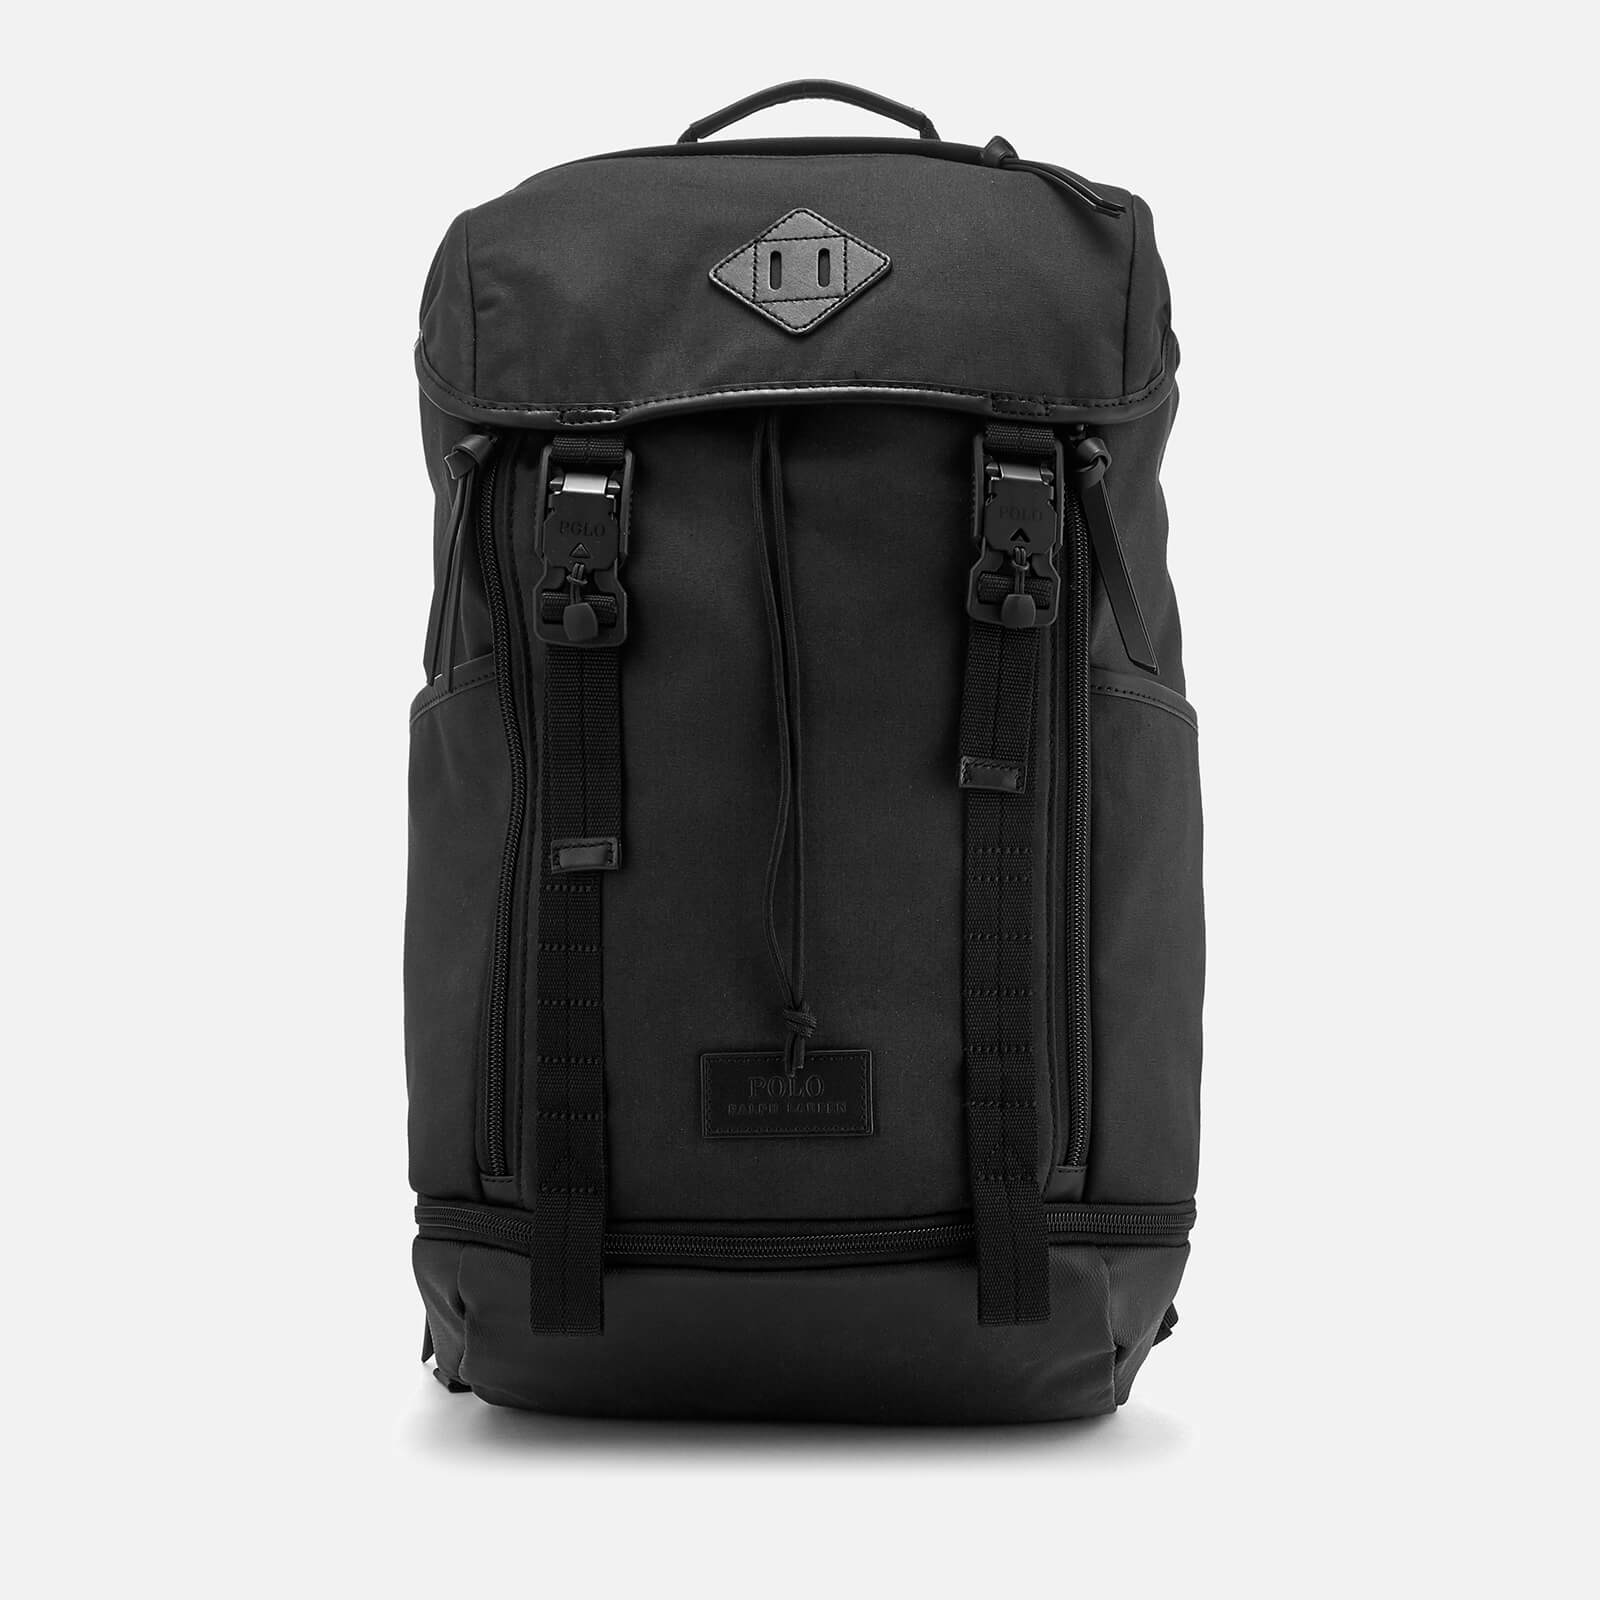 776283a7ef Polo Ralph Lauren Men s Medium Canvas Backpack - Black - Free UK Delivery  over £50